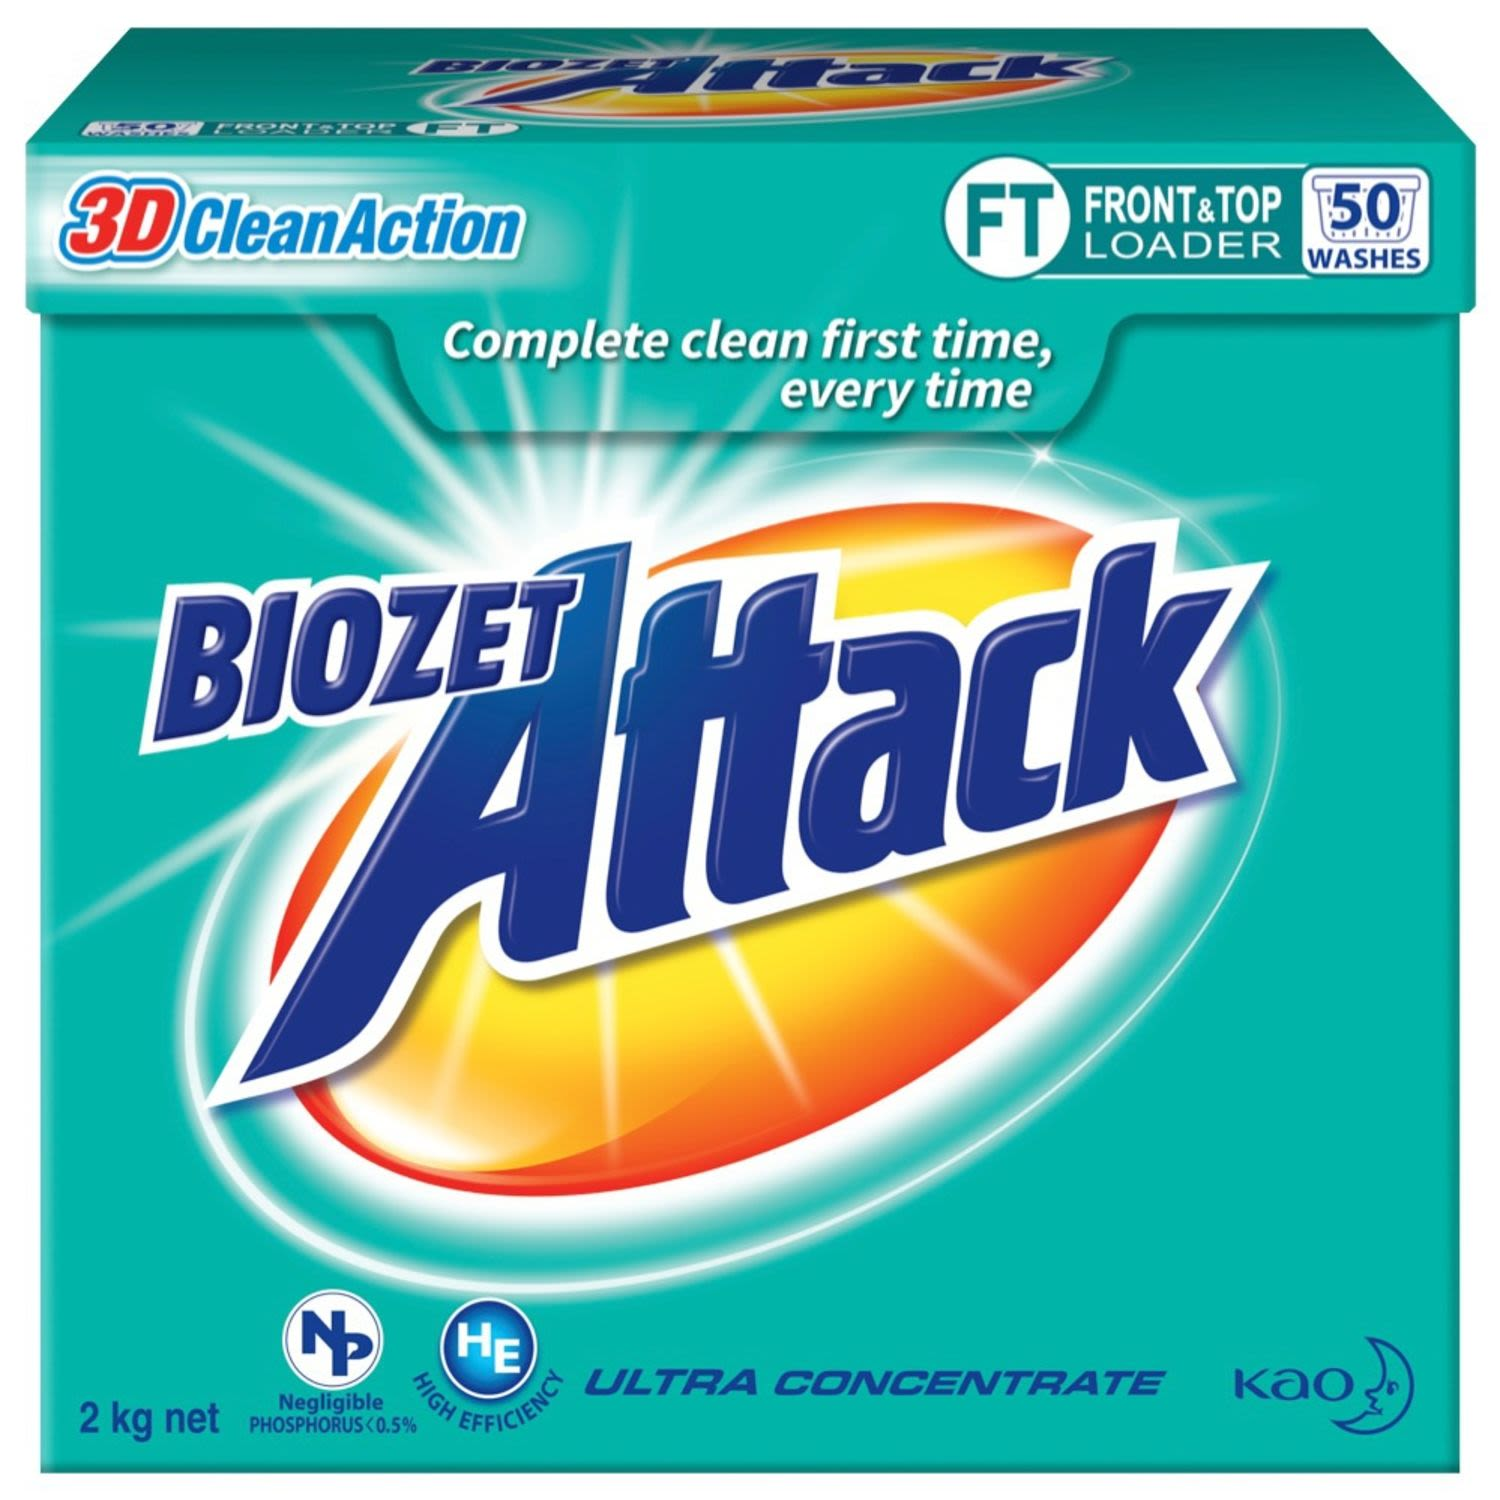 Biozet Attack 3D Clean Action Front and Top Loader Laundry Powder, 2 Kilogram